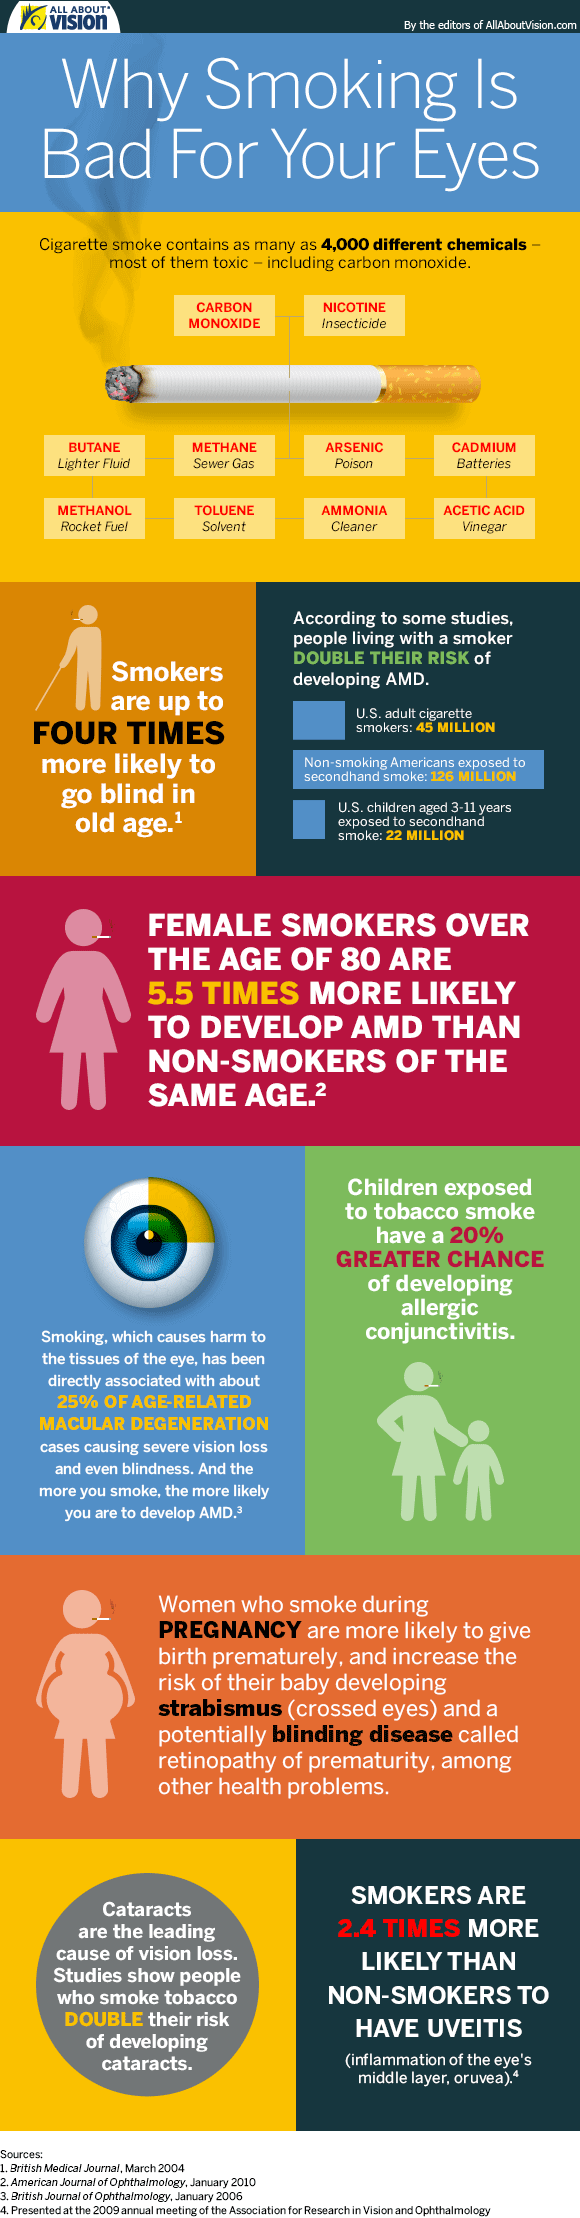 smoking-infographic